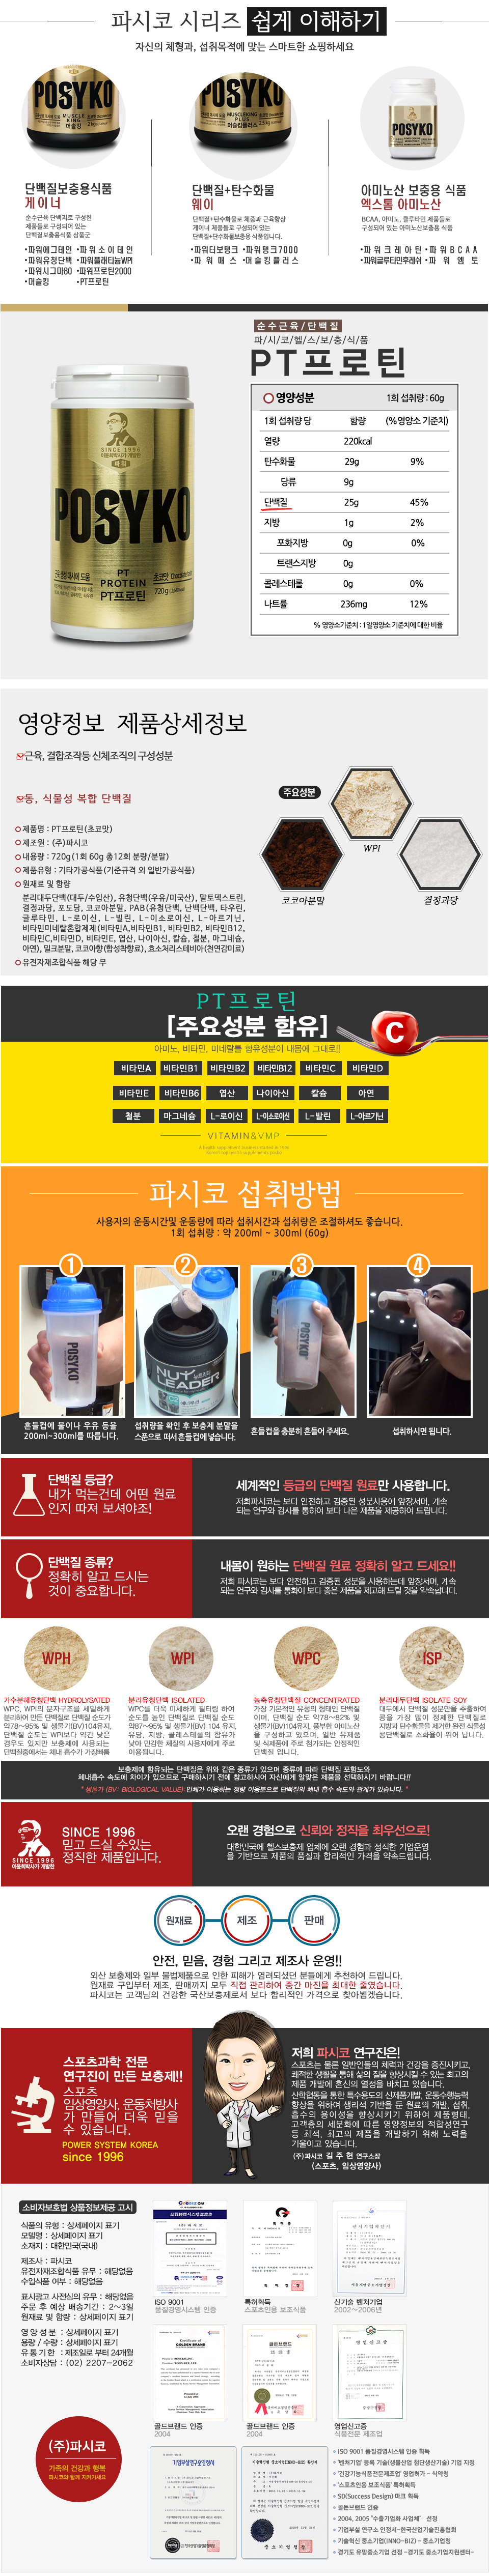 [ etc ] Pt Protein Chocolate Flavor 720G (Weight Training) Protein Supplement/Health Supplement/Shaker Included